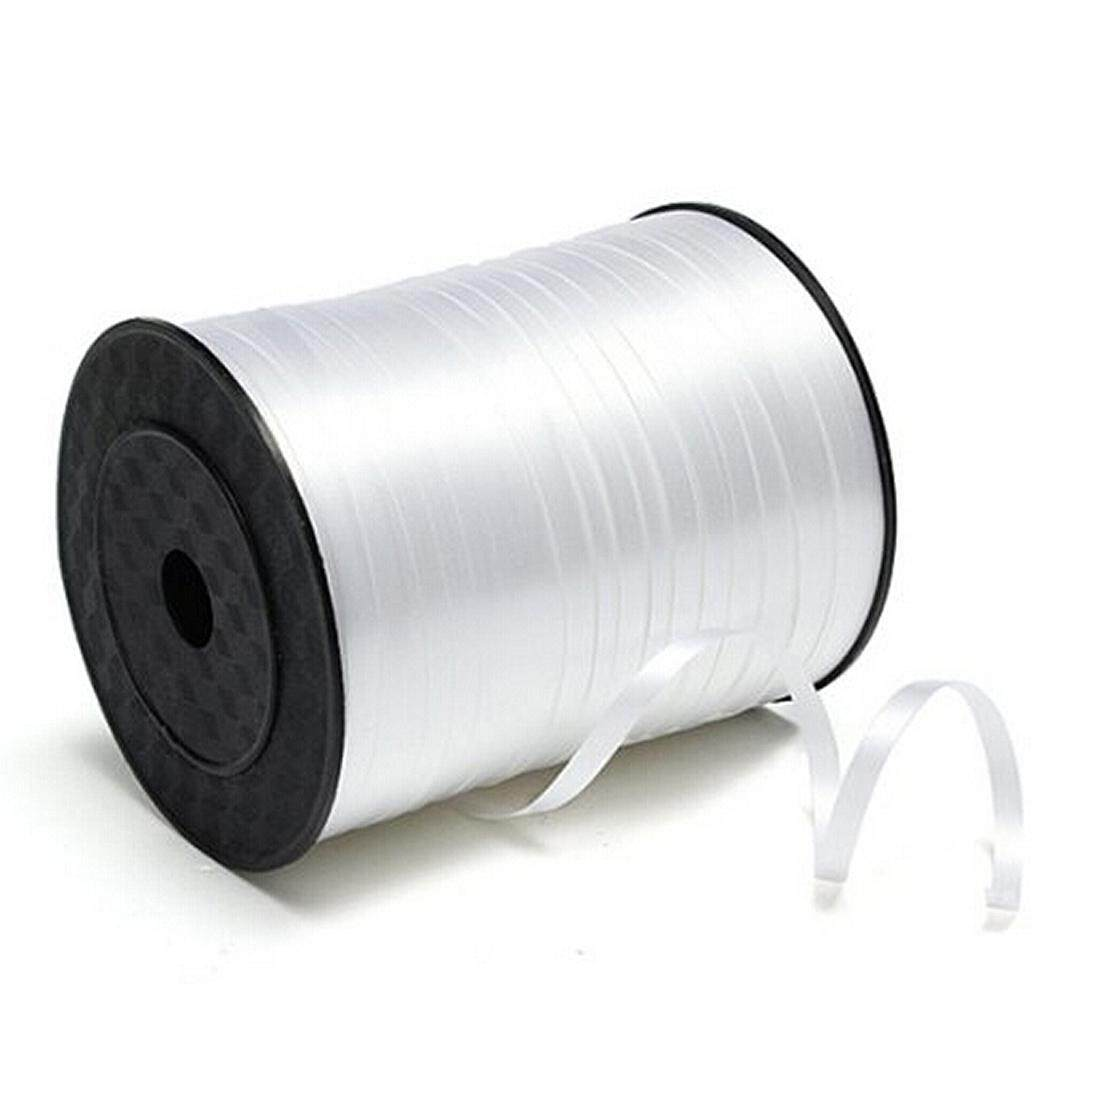 Buy Sell Cheapest 5mm Roll Curling Best Quality Product Deals Repit Iron 5 Mm Gulungan Balon Pita 500yd Putih Internasional